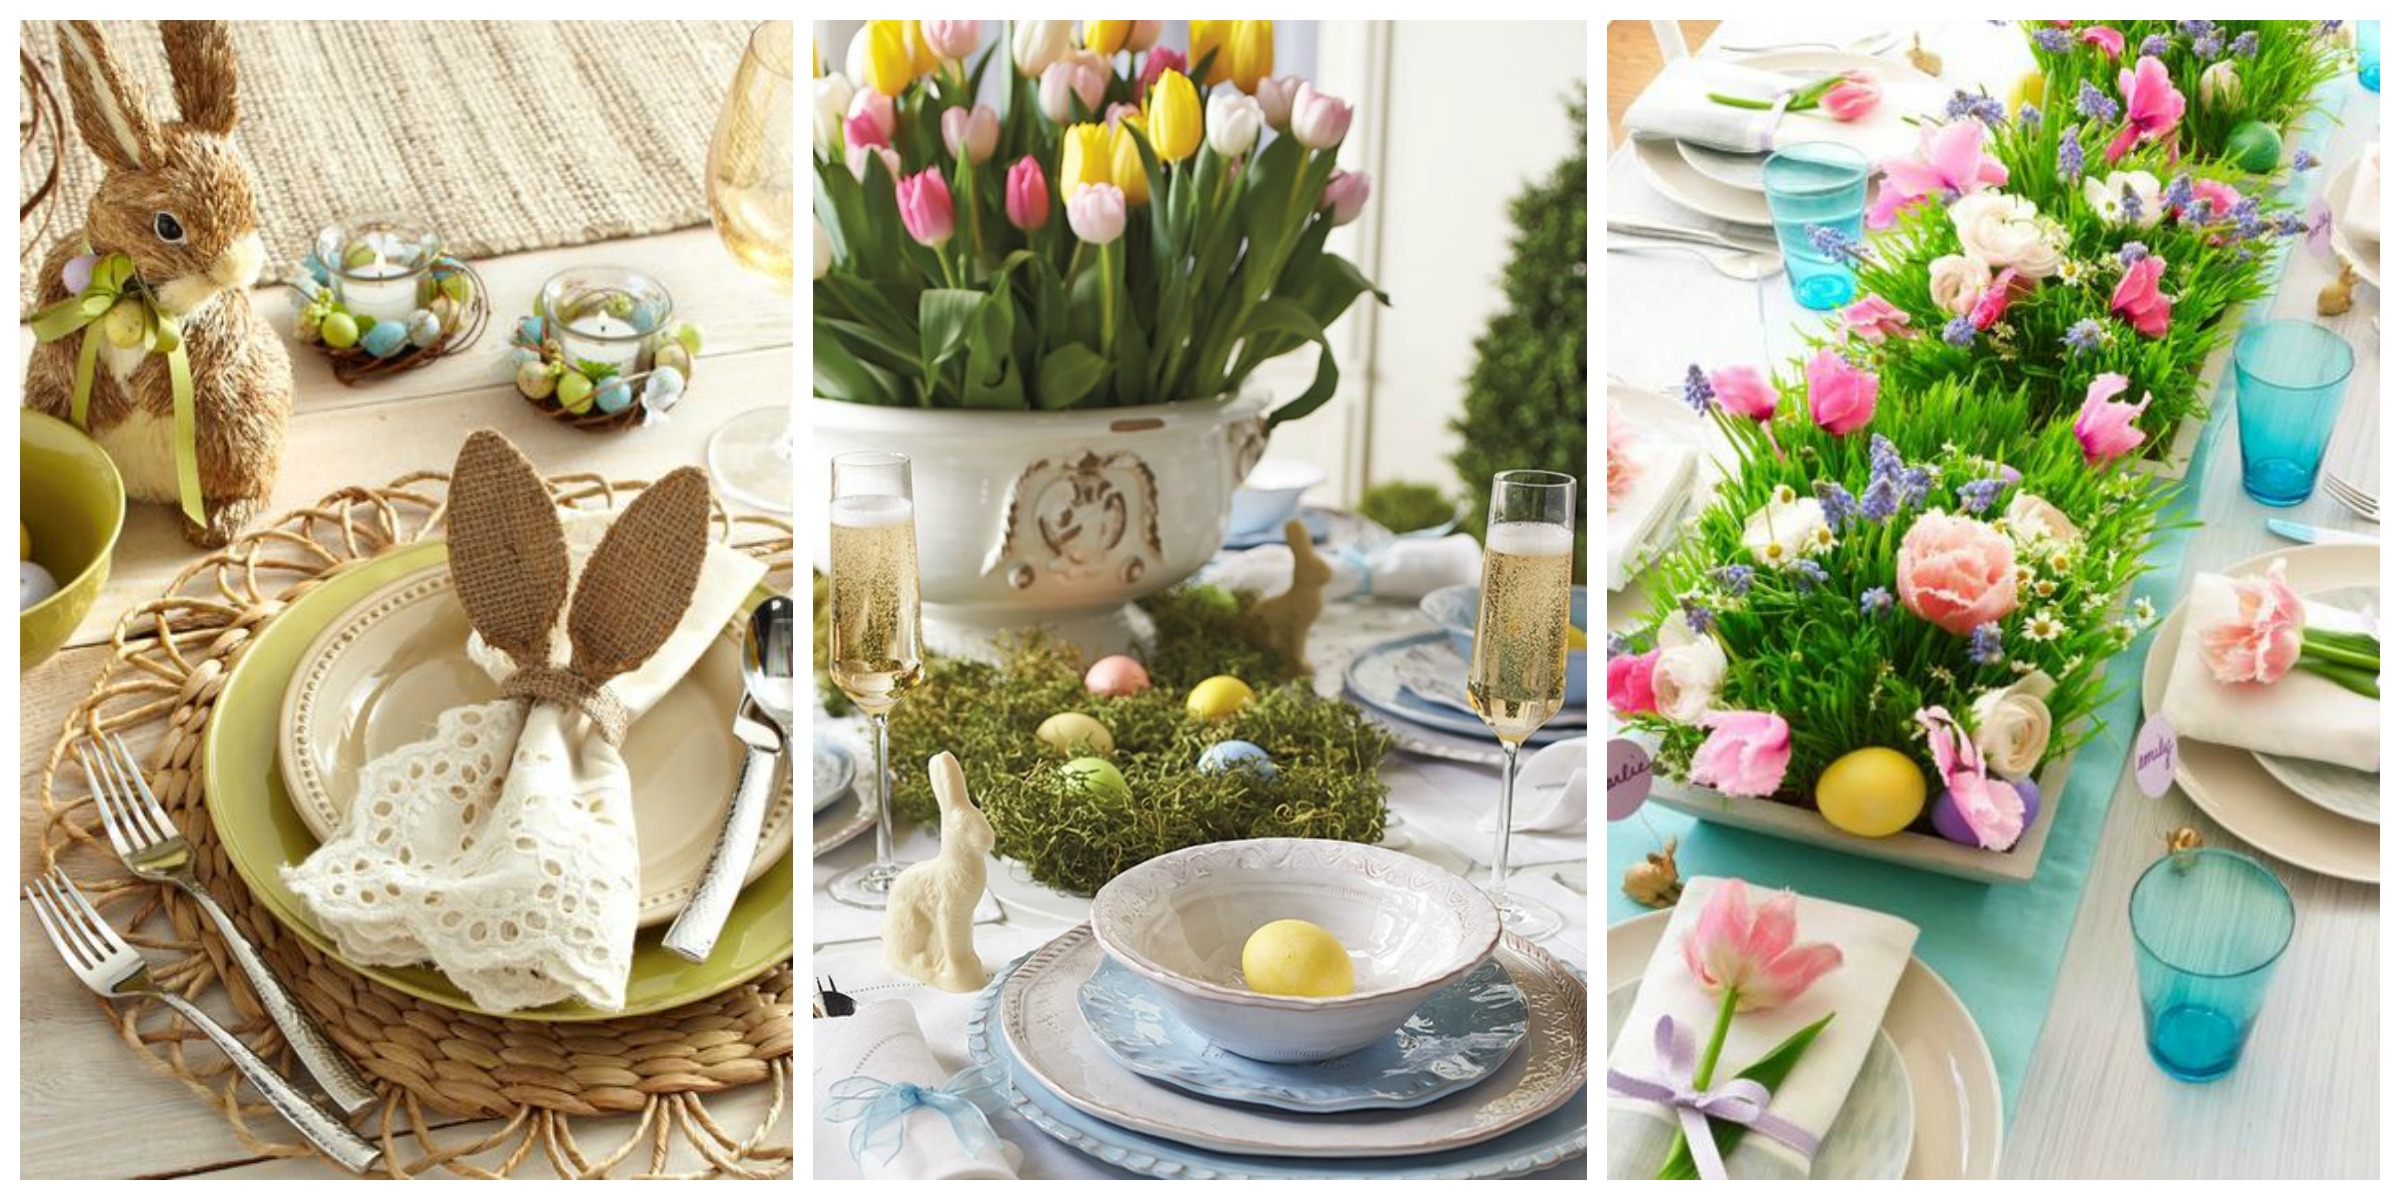 Decorating your Home for Easter - Champagne and Petals